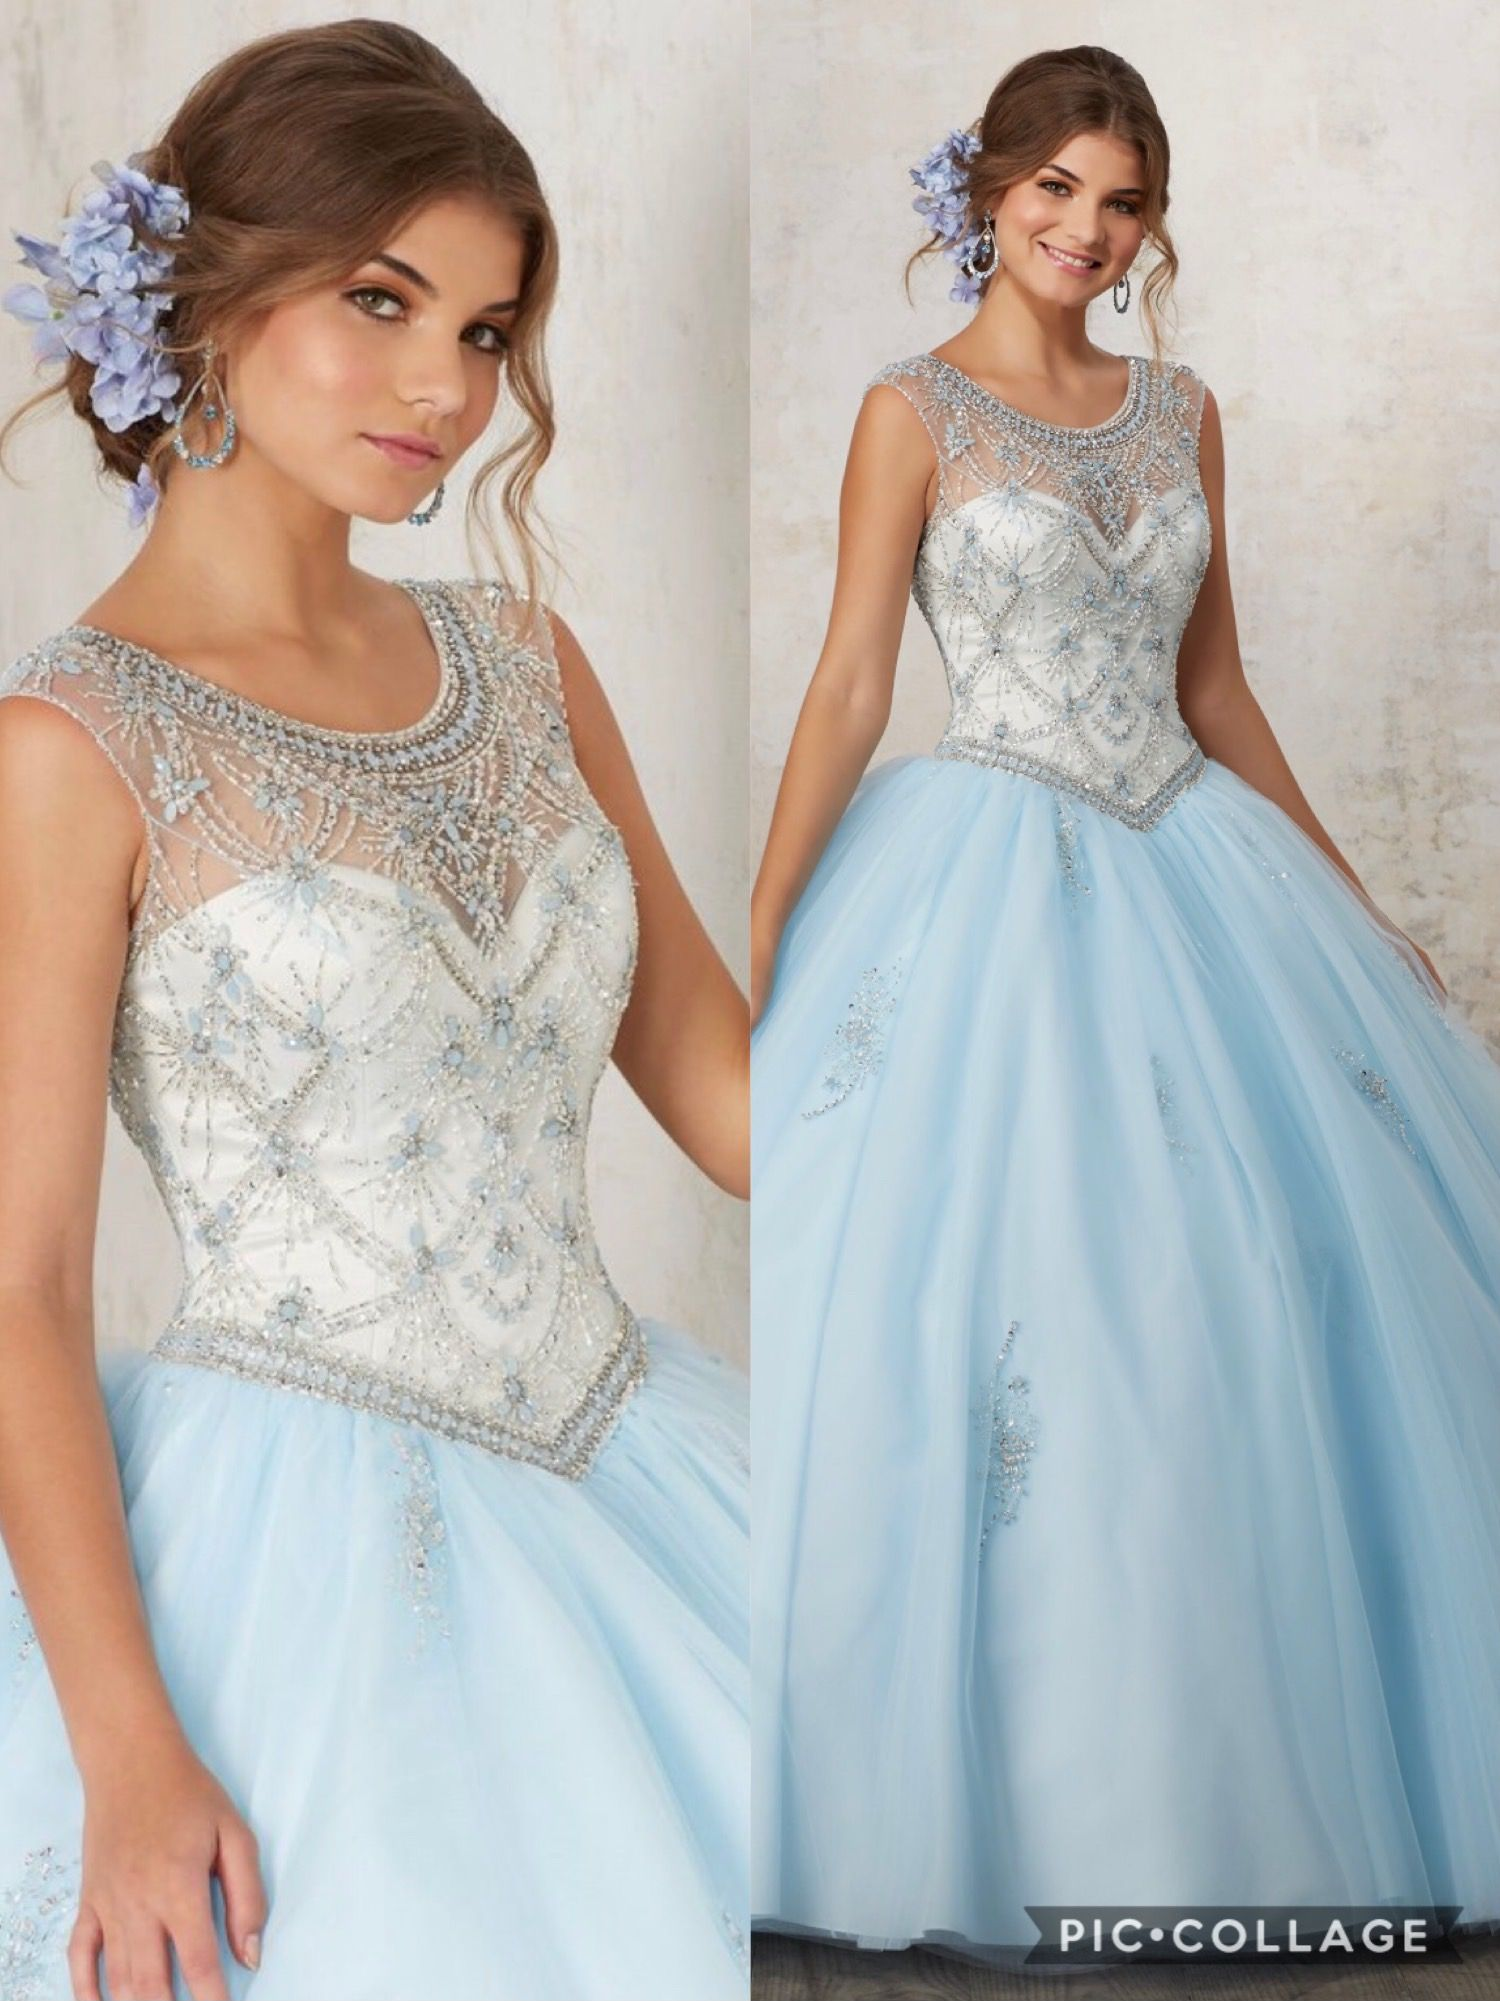 Light Blue With Champagne Quinceañera Dress Beautiful Illusion Neckline Beaded Jewel Details Liqués Throughout The Skirt